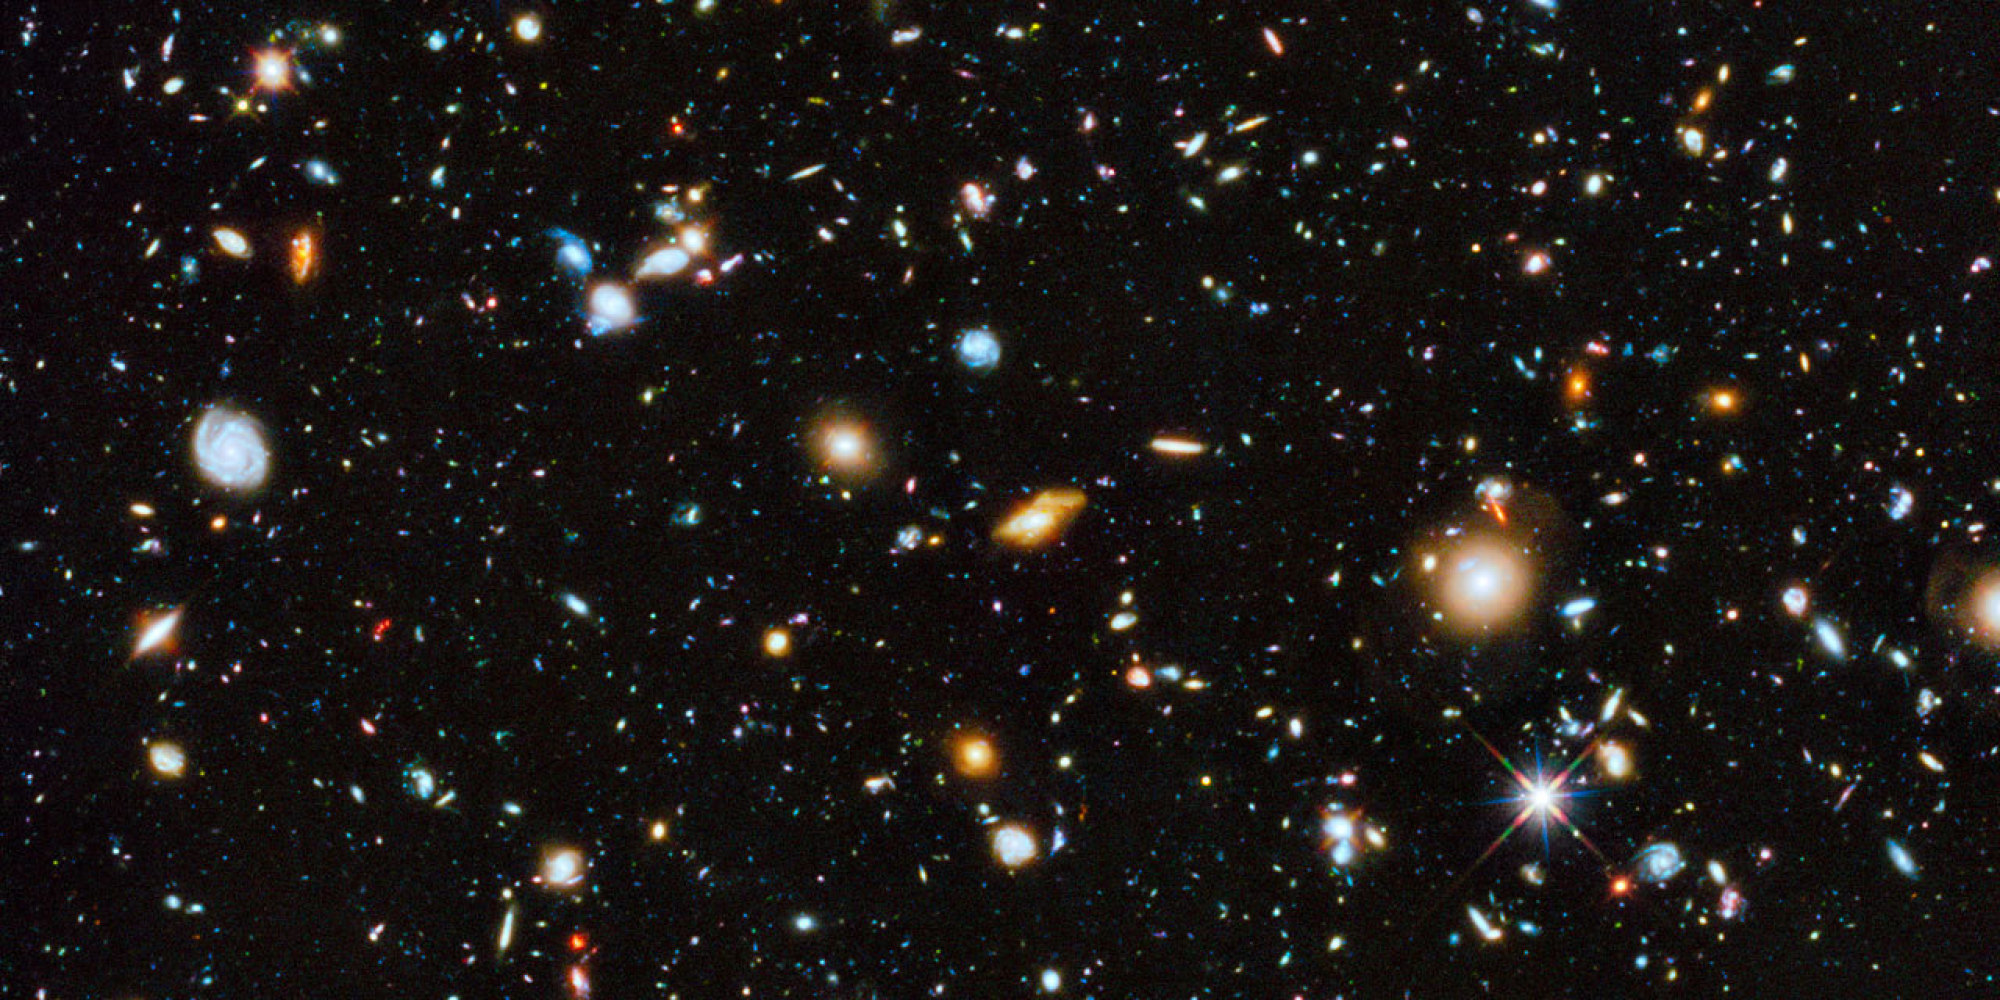 This Amazing Shot Of 10 000 Galaxies May Be The Hubble